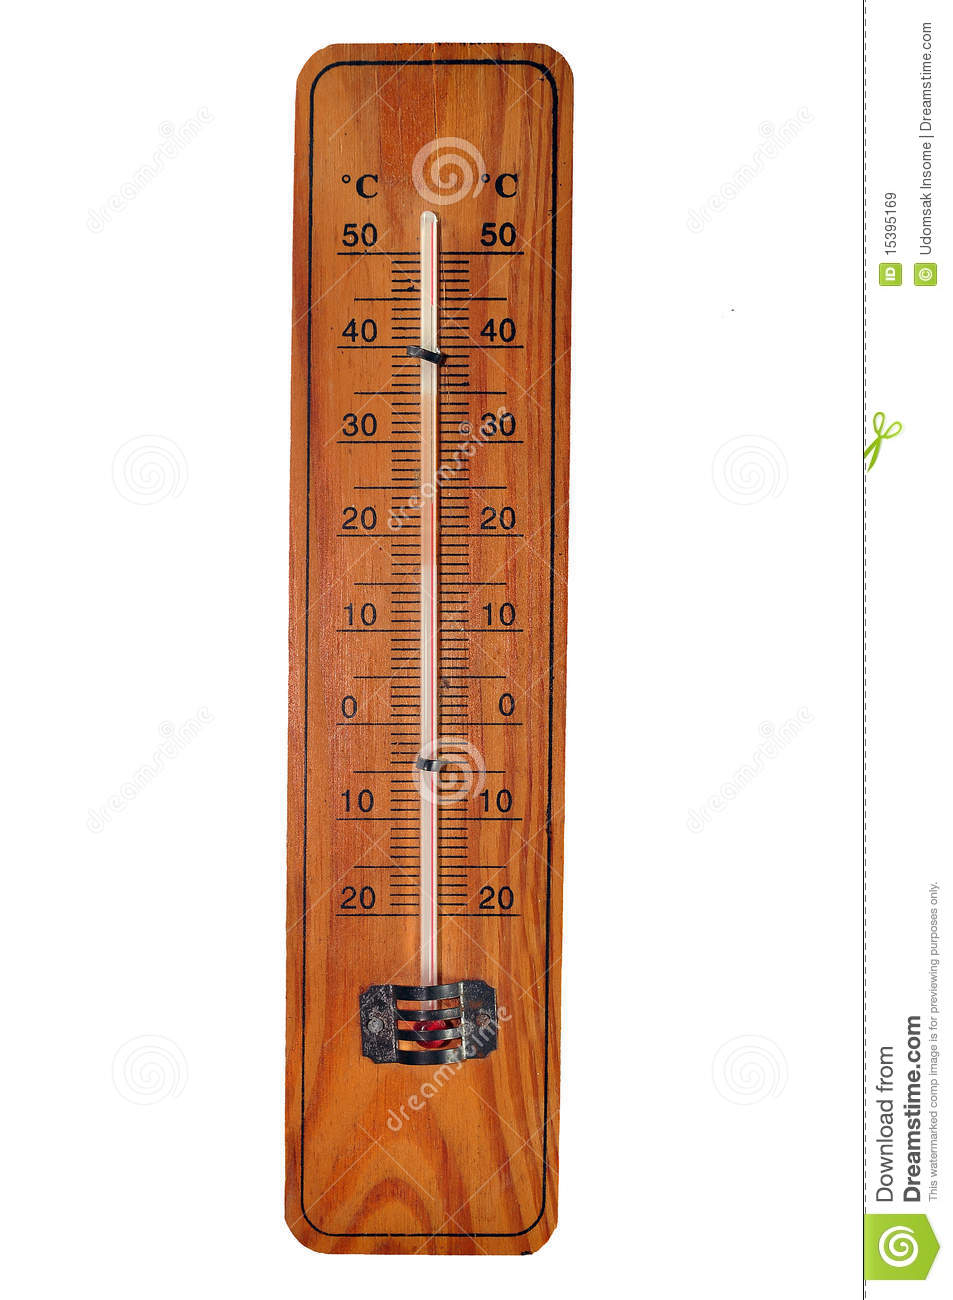 old thermometer royalty free stock images